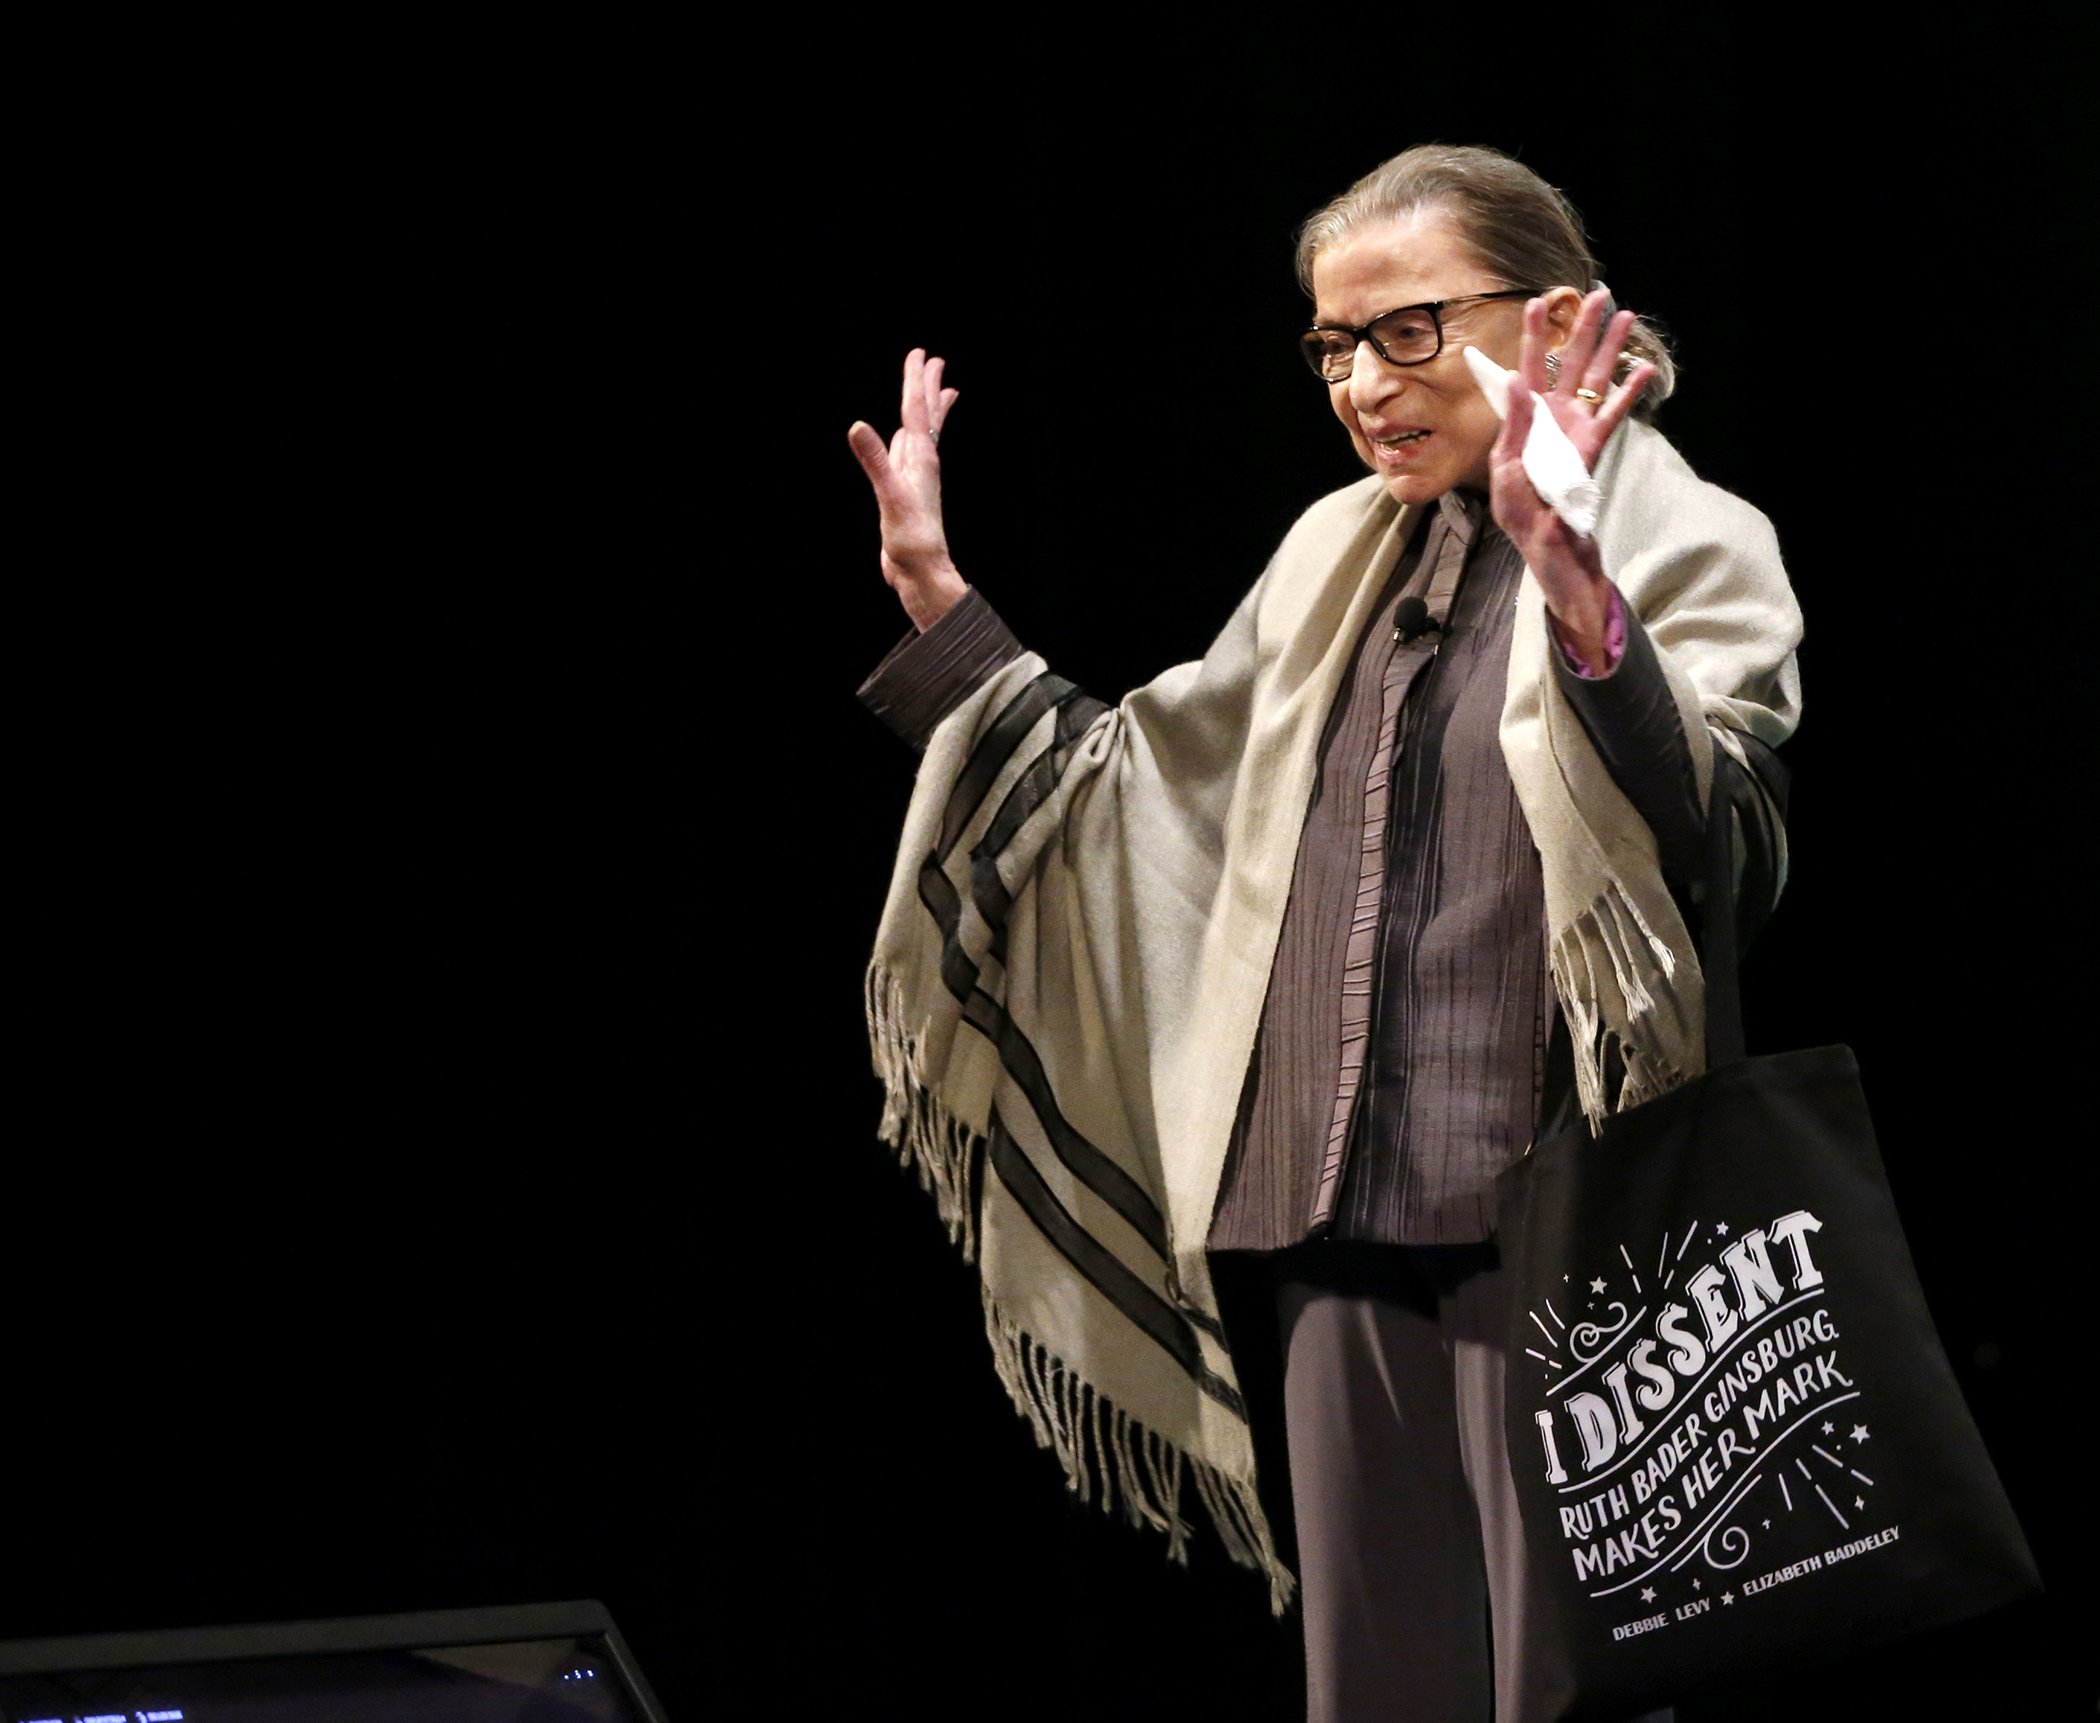 Ruth-Bader-Ginsburg-Obit-Womens-Equality-Rights-003.jpg